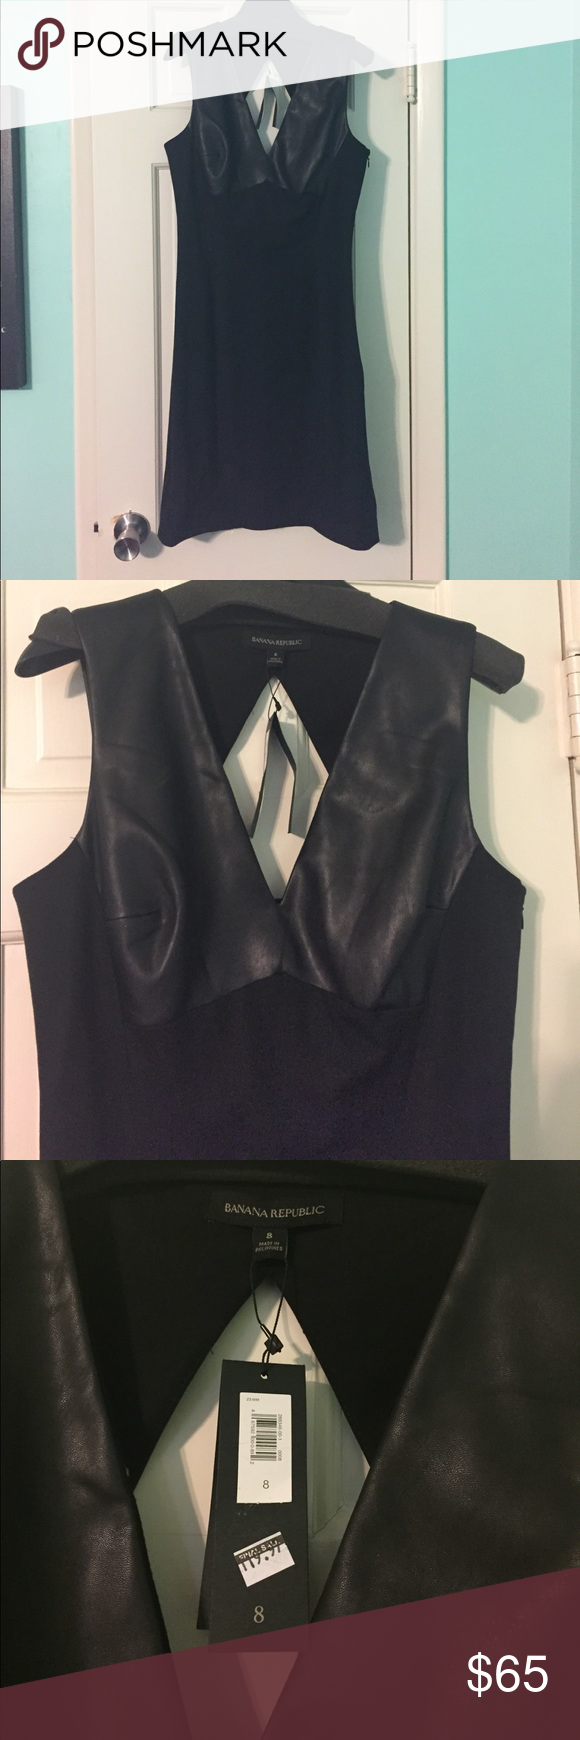 Banana Republic Sloan Dress Black Leather 8 NWT Banana Republic Sloan Dress in black/faux leather size 8 NWT. Made with signature stretch fabric to hold its shape and flatter your figure. Banana Republic Dresses Mini